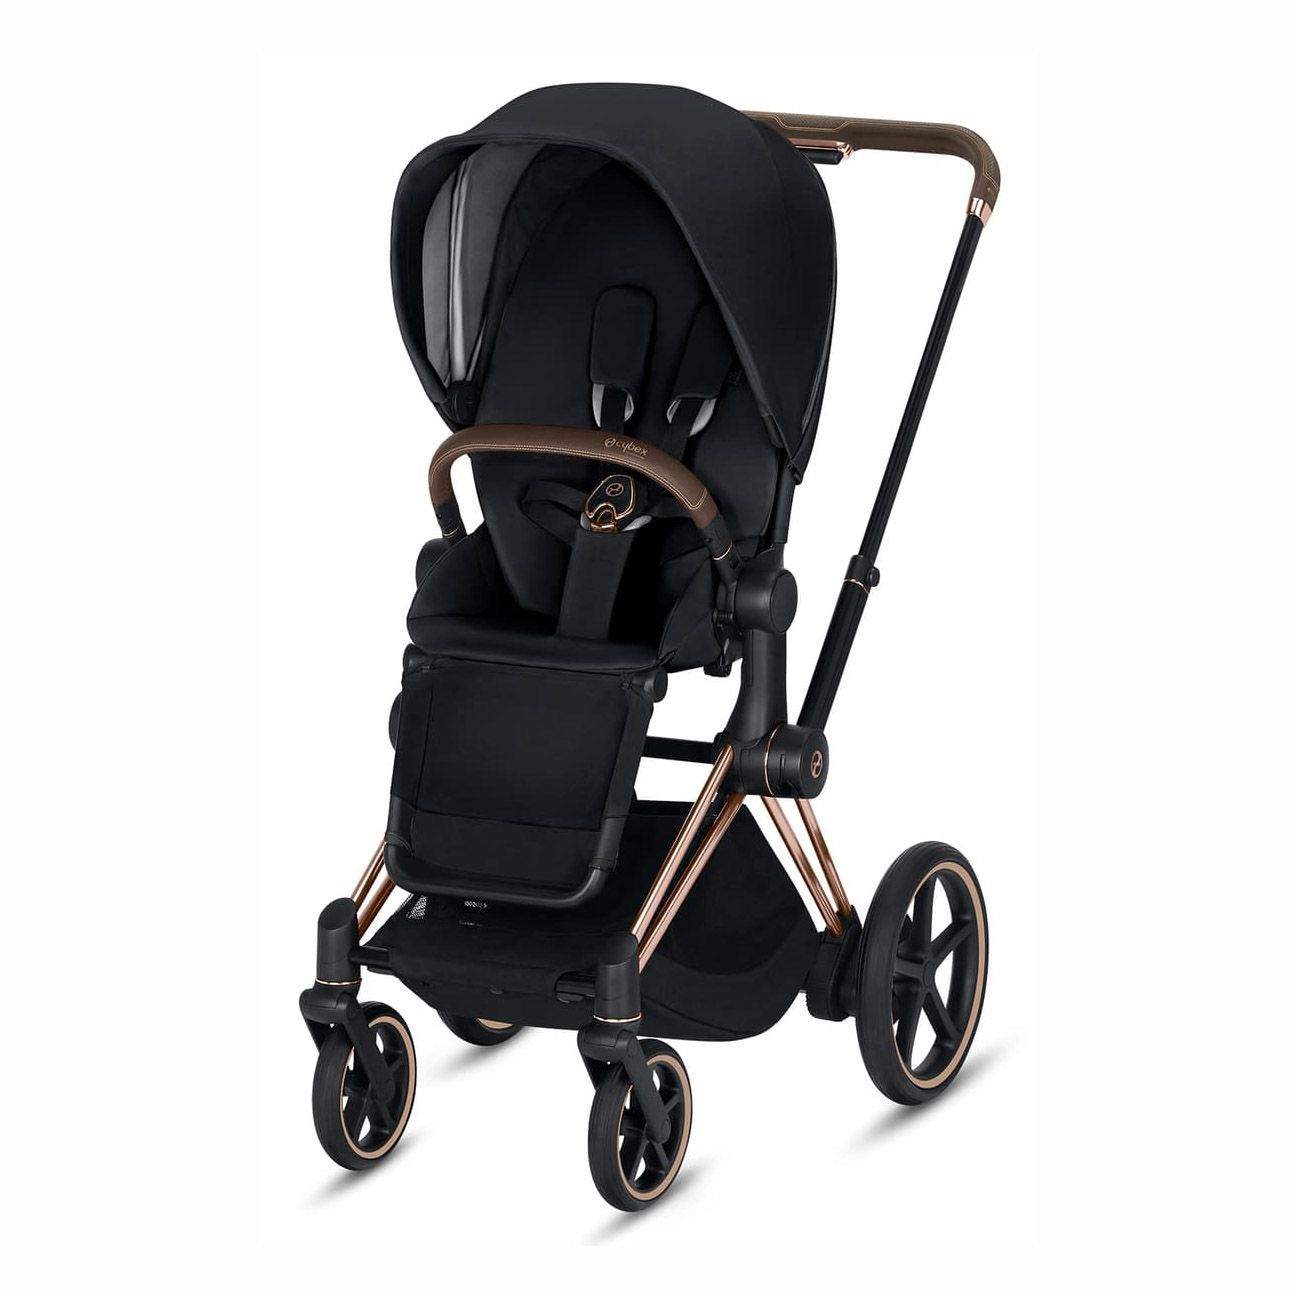 12 Best Baby Strollers 2020 Top Rated Stroller Reviews